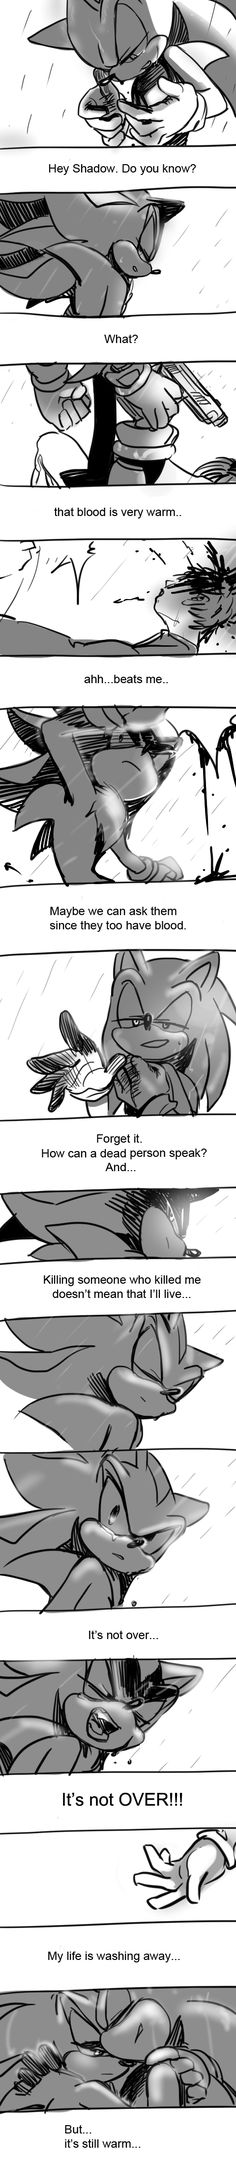 sonadow_rain by lujji on DeviantArt